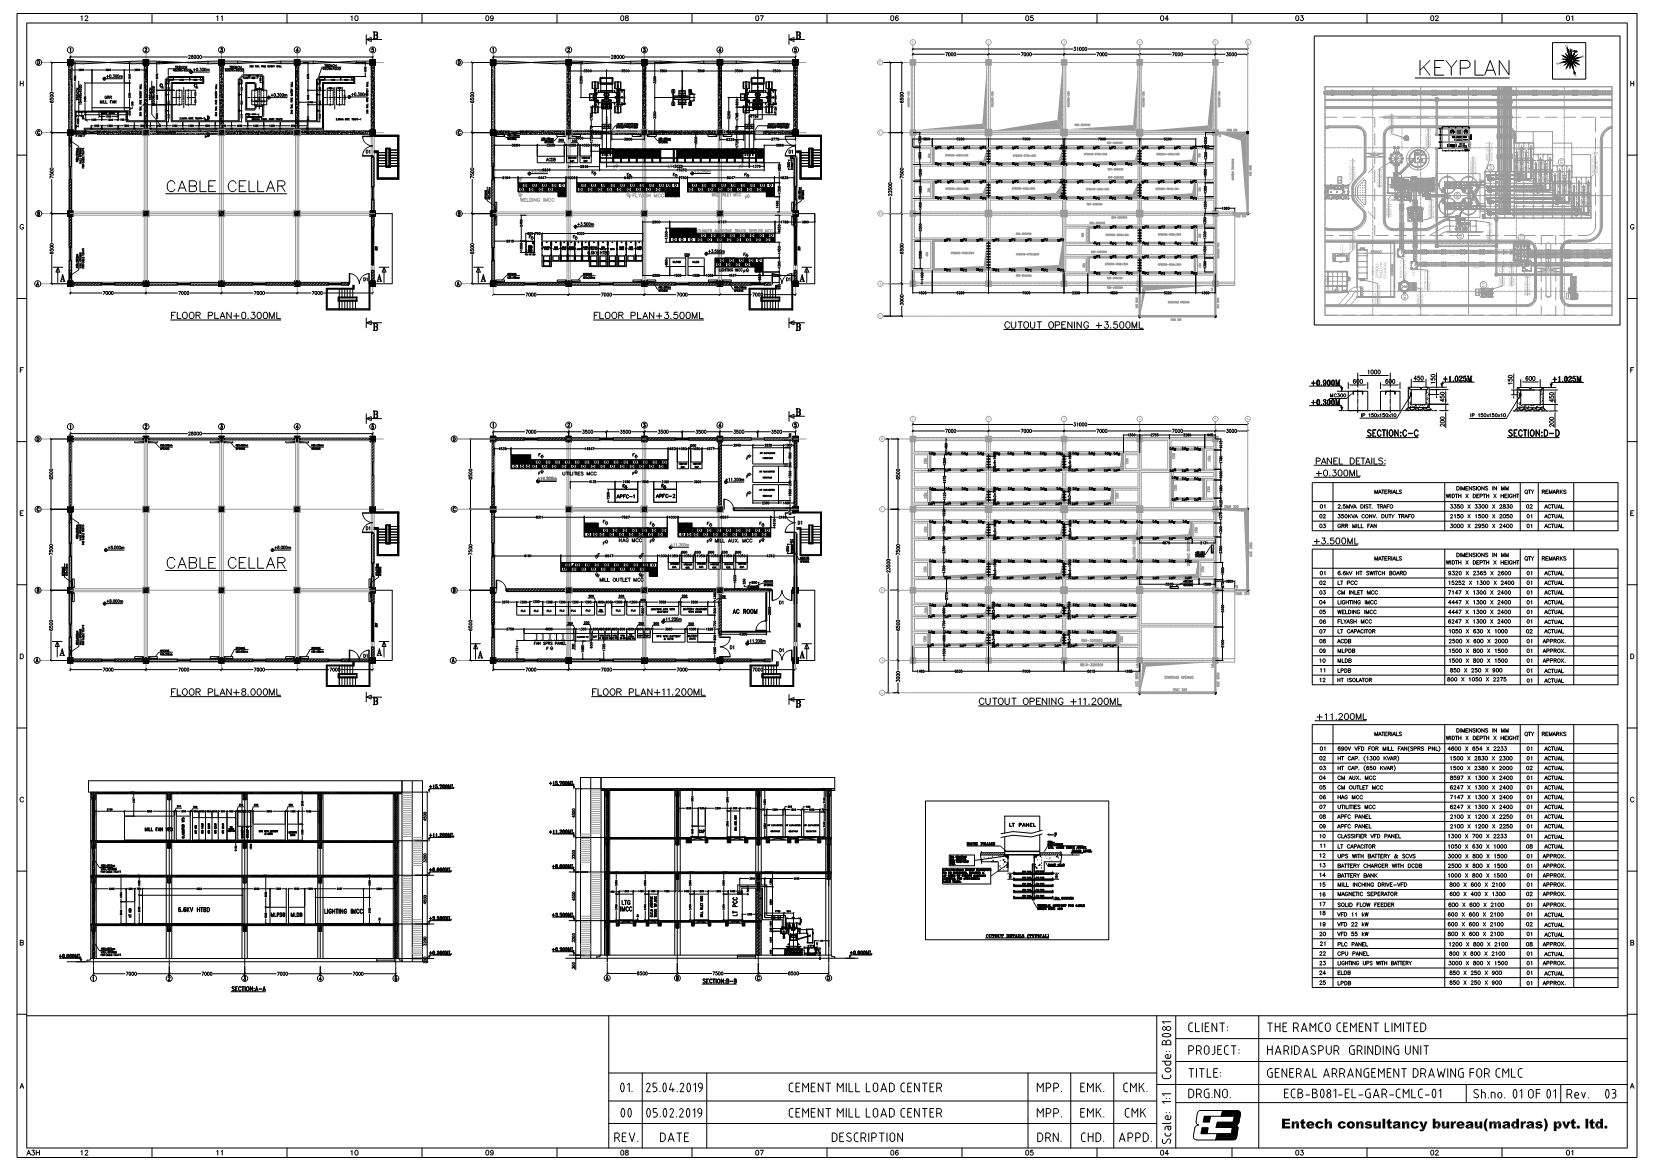 Electrical Equipment Layout